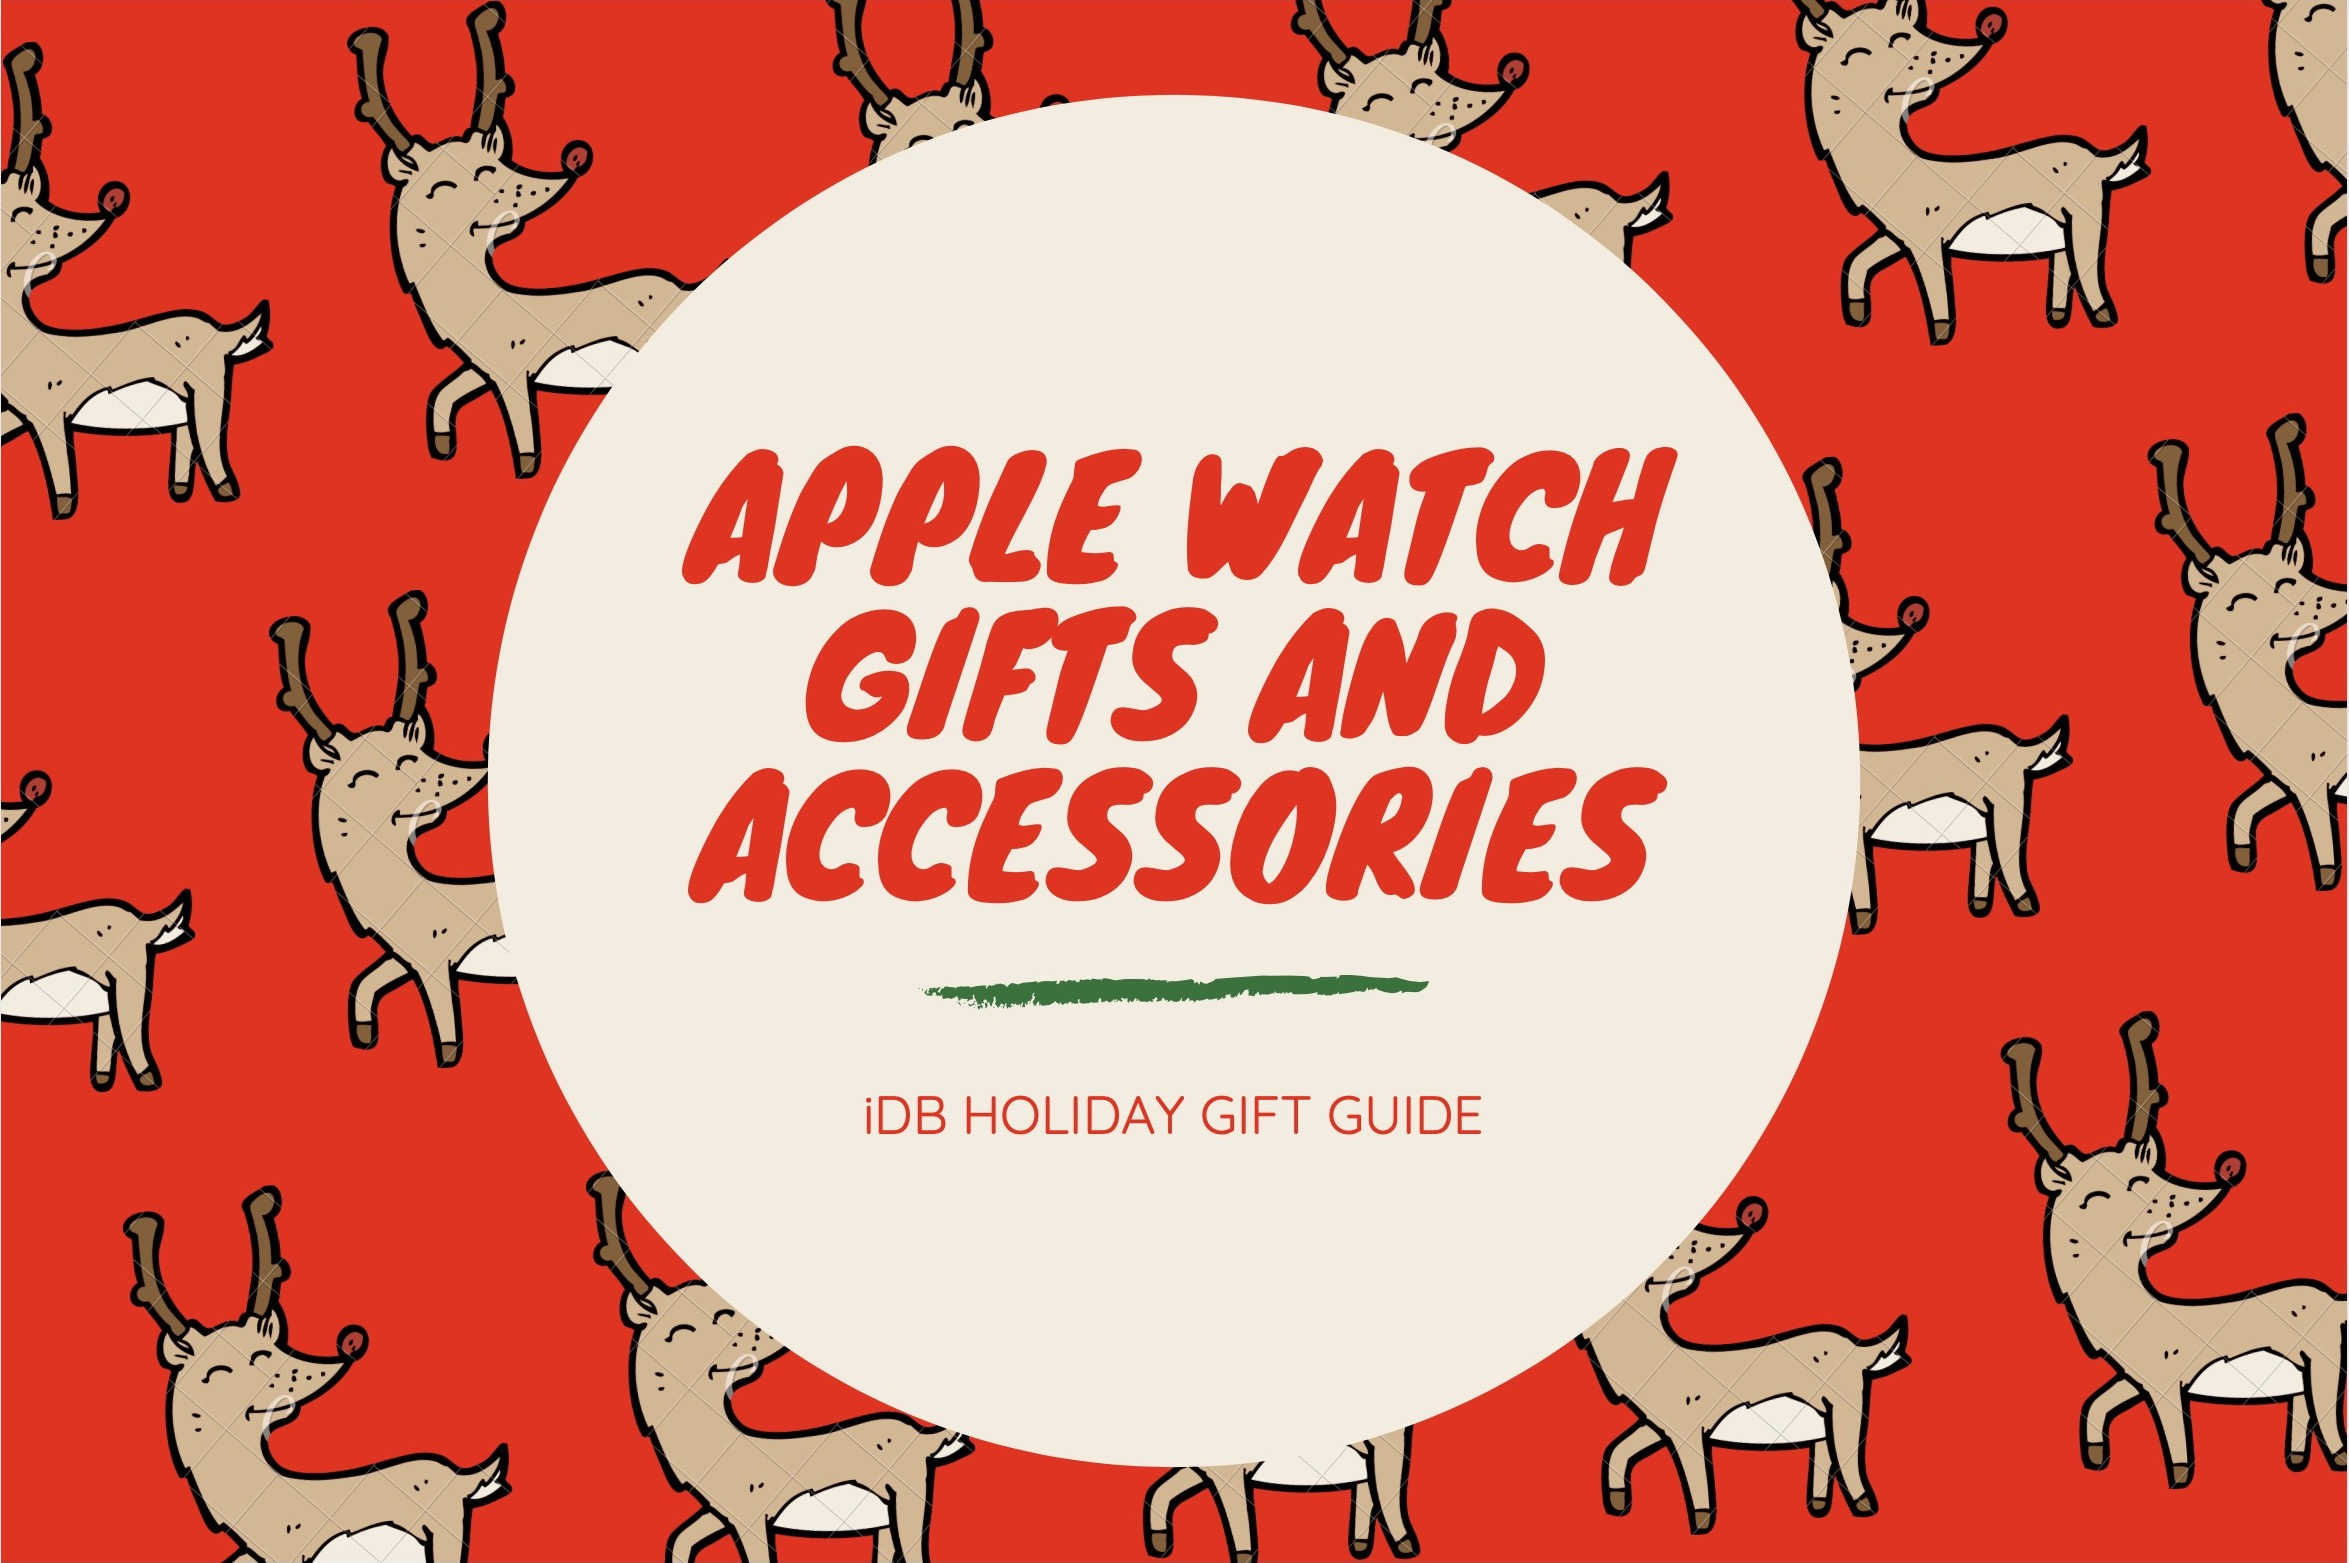 Apple Watch gift guide 2019